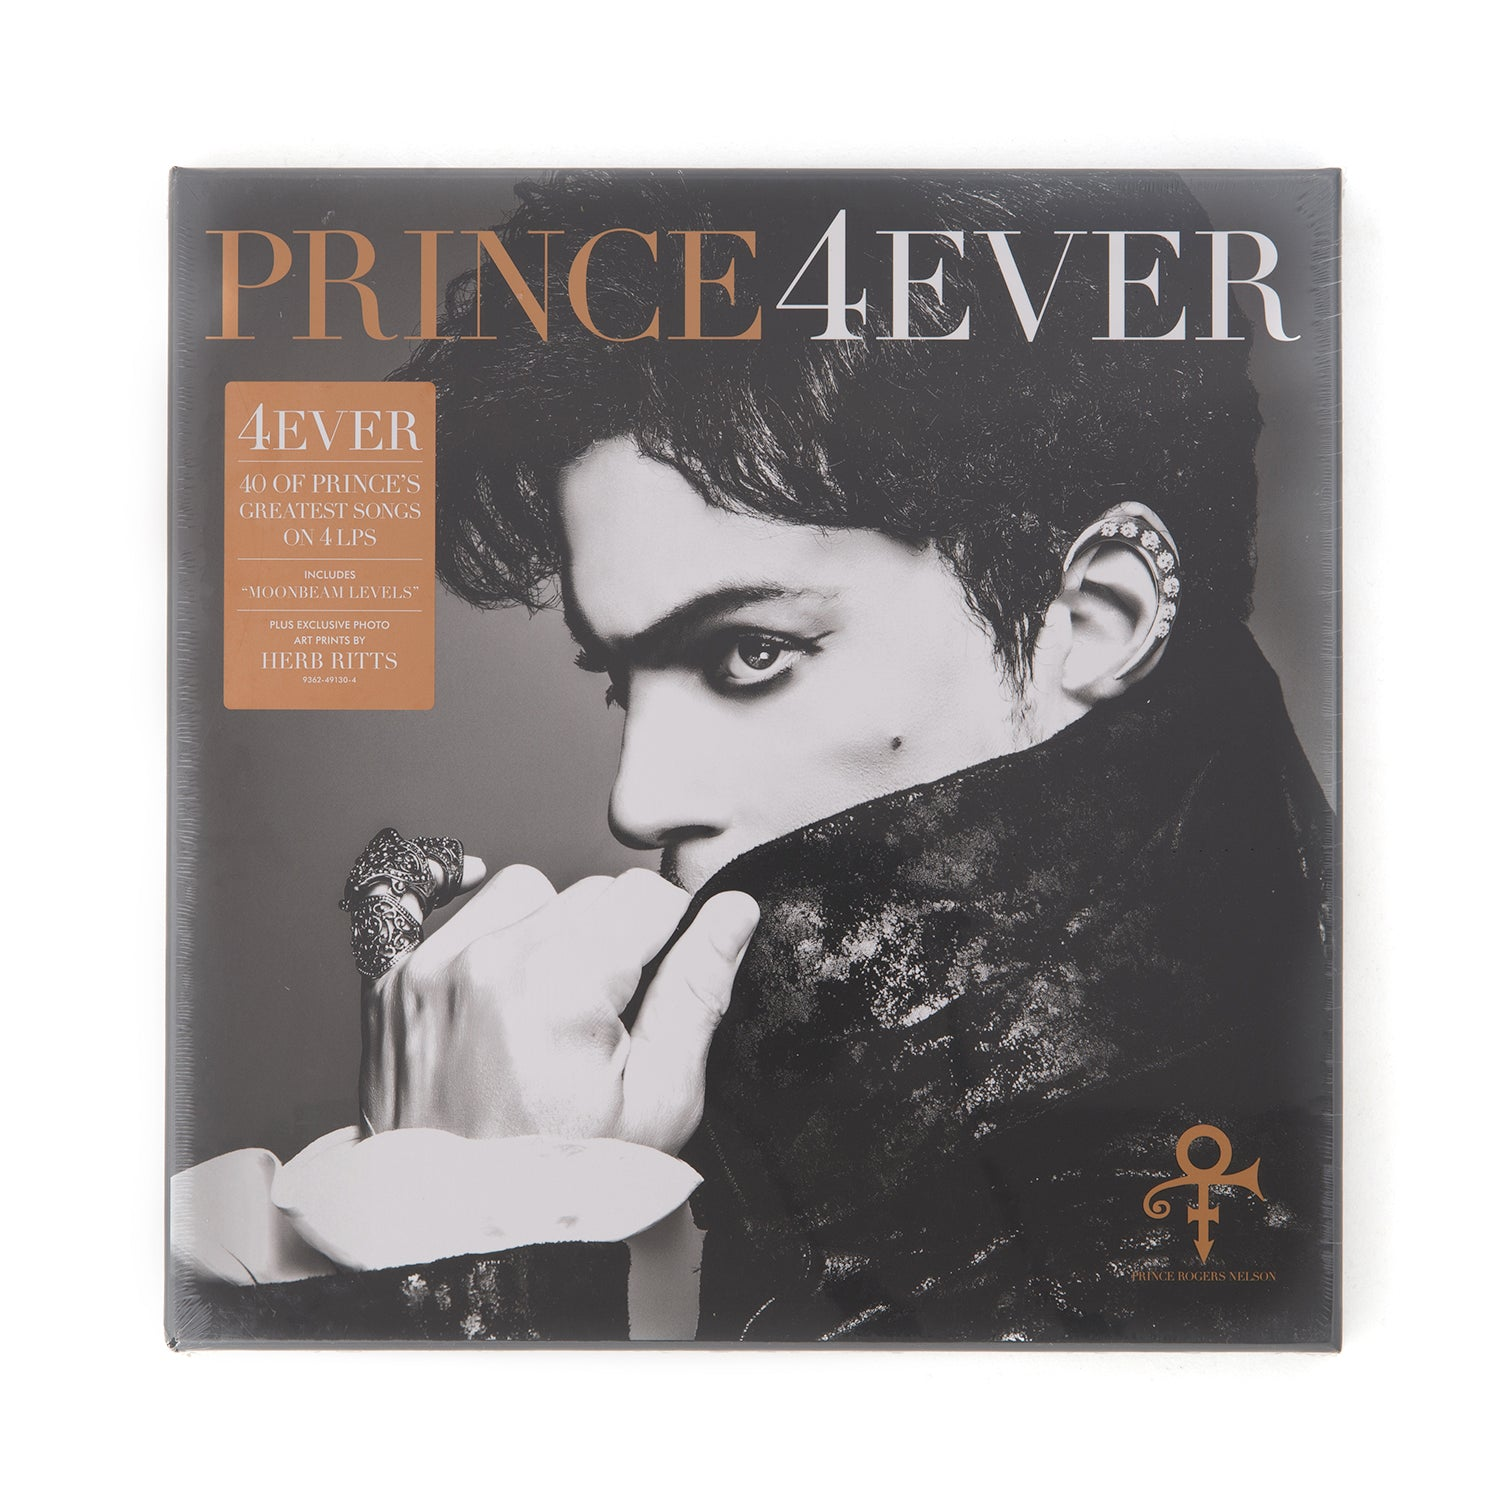 Prince - 4ever -Box Set- 4-LP